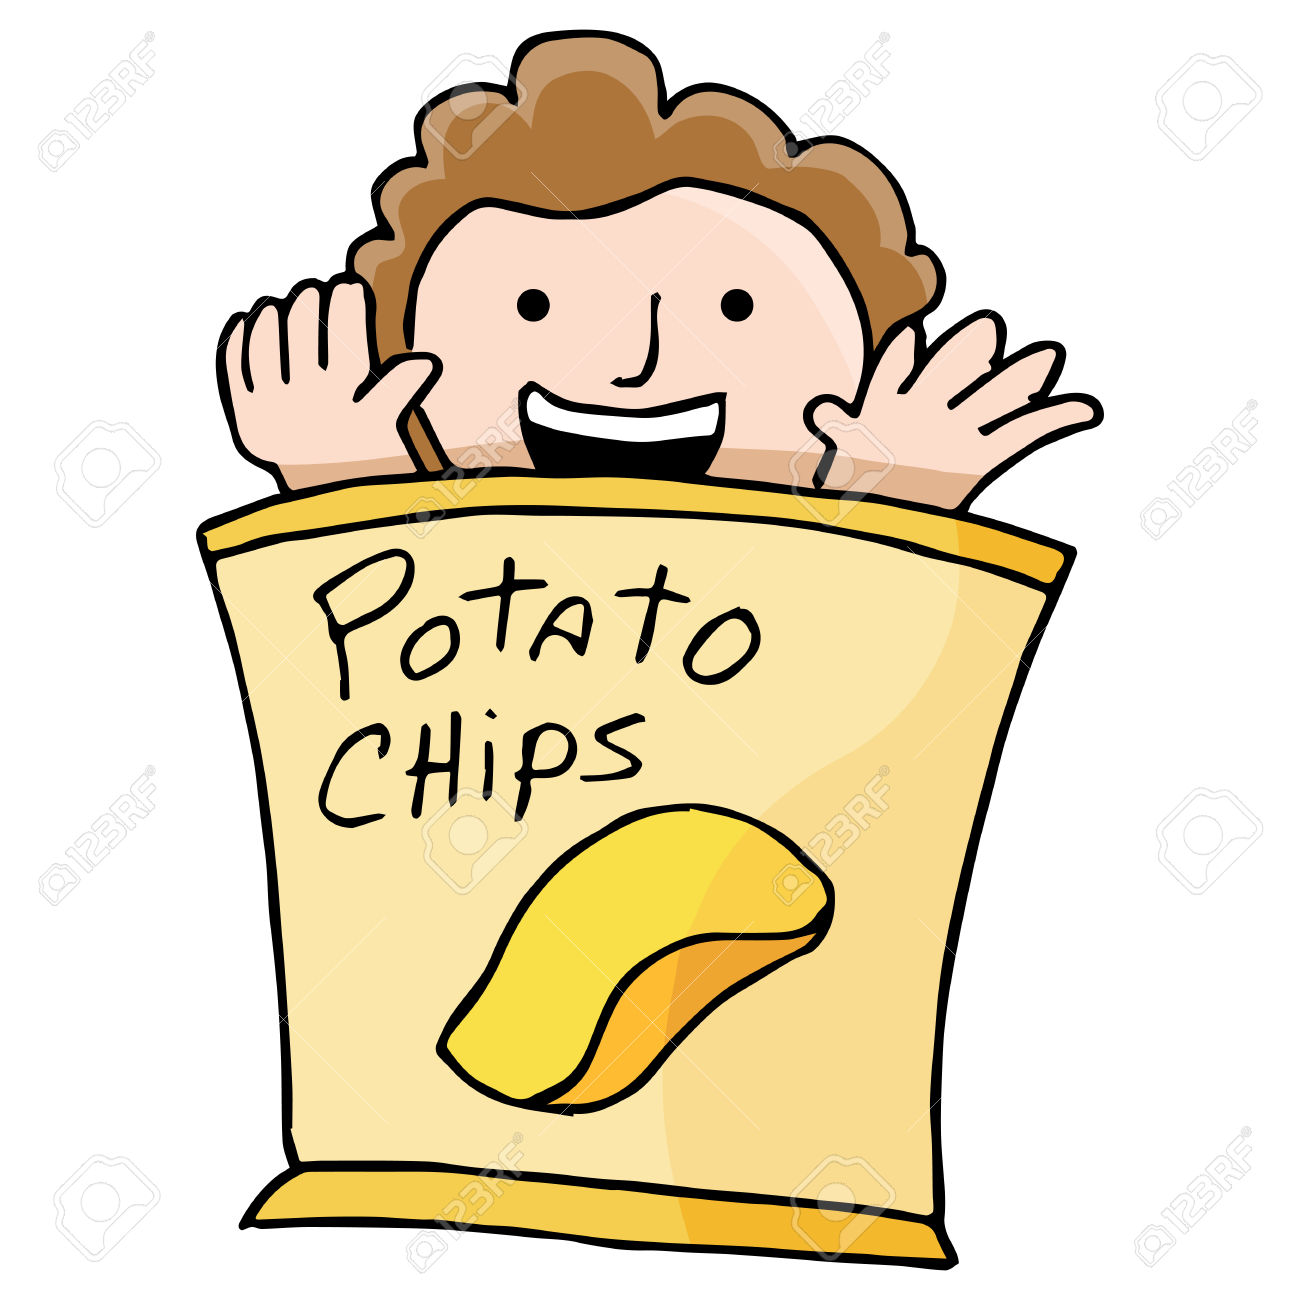 A person eating food clipart graphic transparent library Eating Junk Food Clipart | Free download best Eating Junk Food ... graphic transparent library